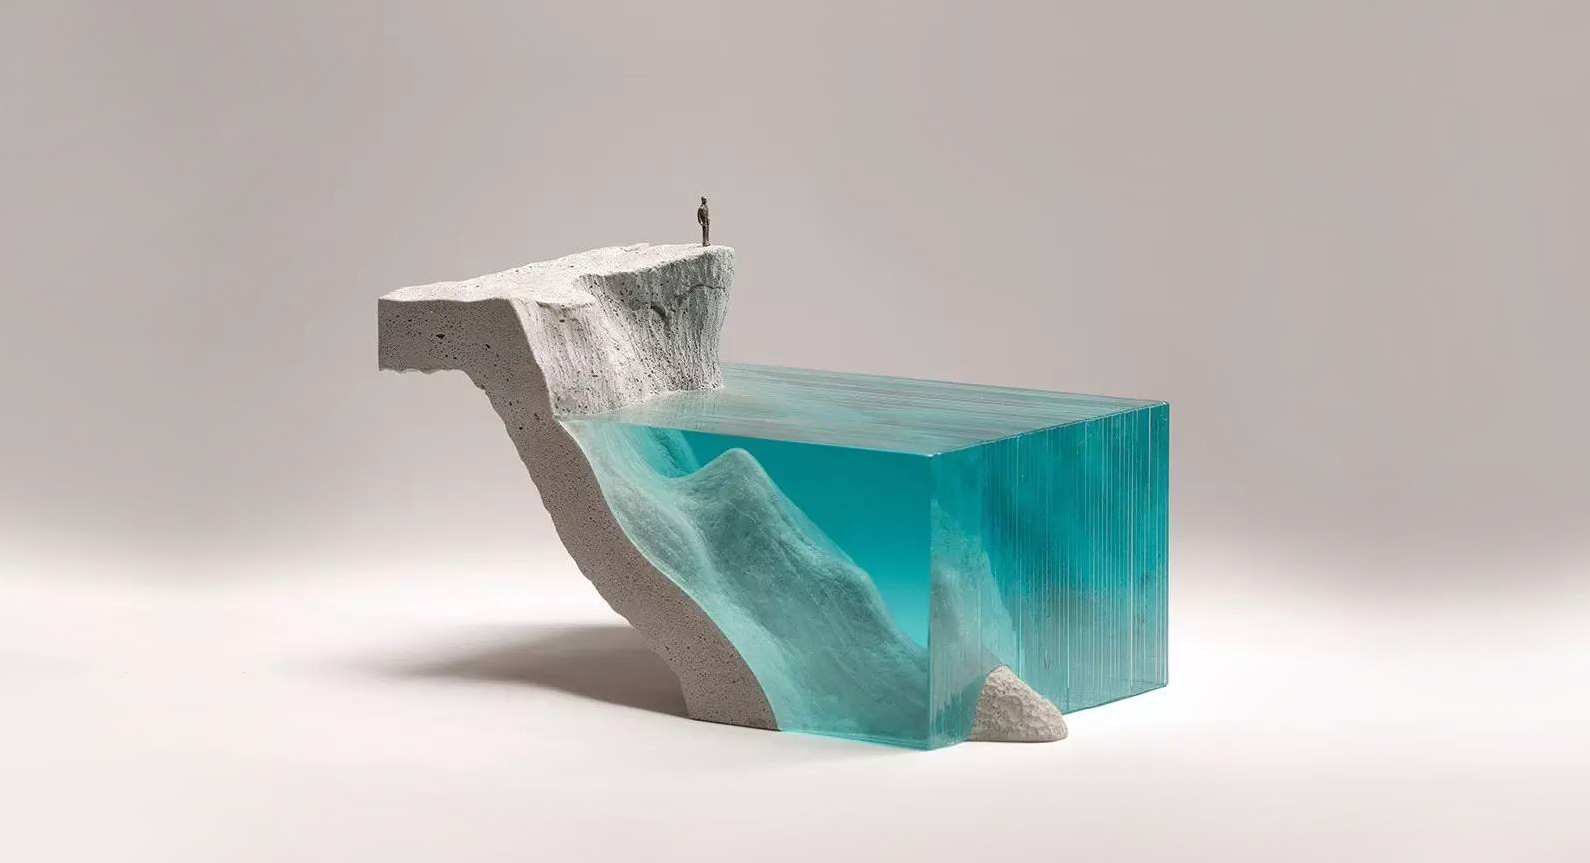 Ben Young Transforms Hand-Cut Glass Into Unique Aquatic Landscapes